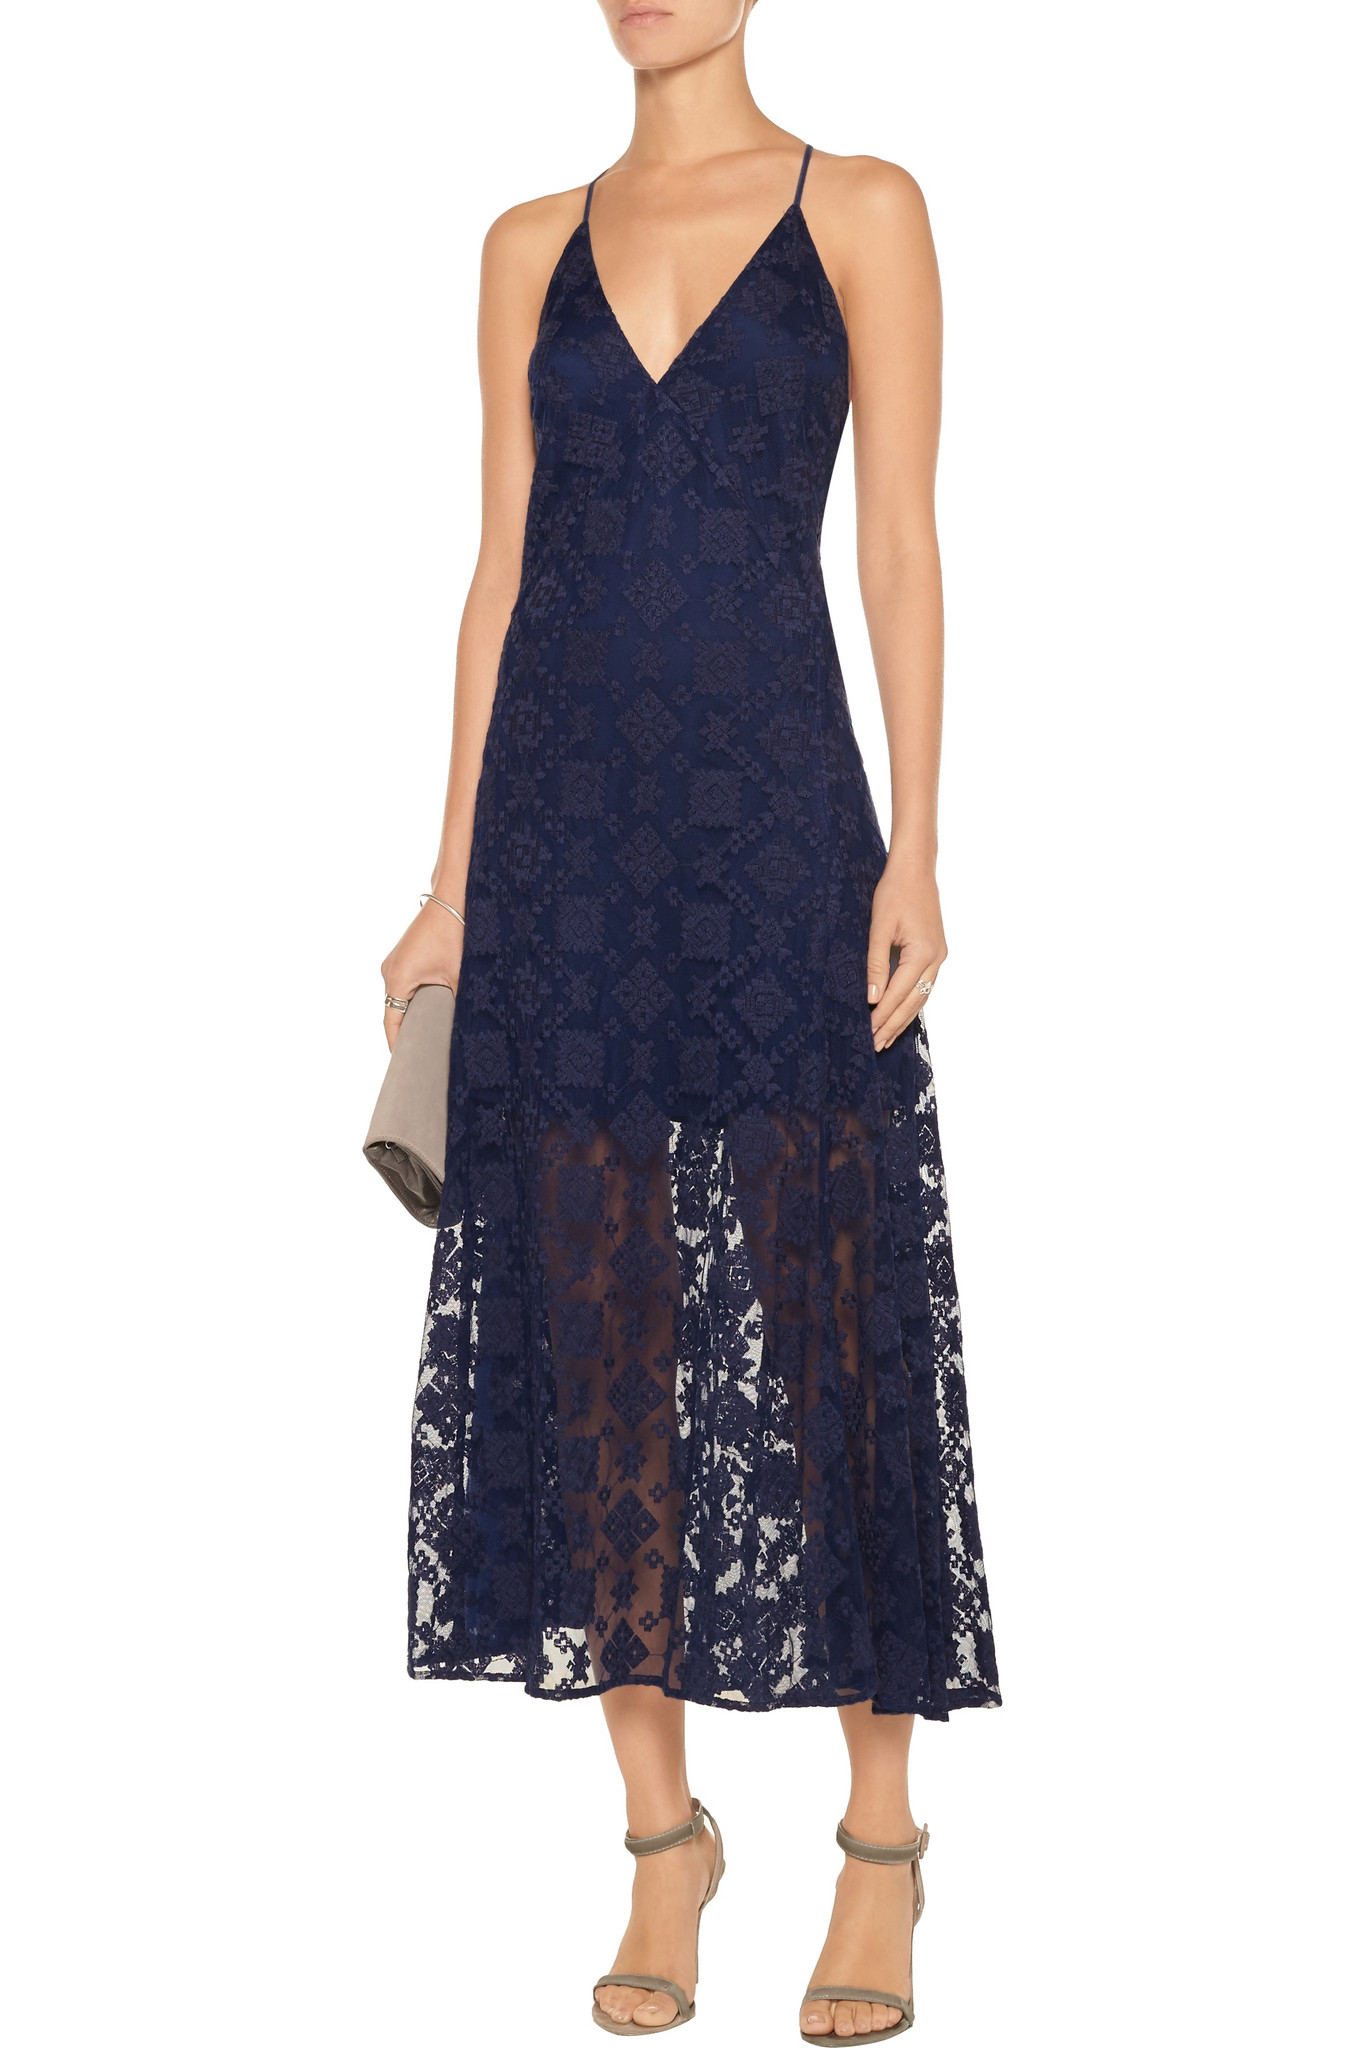 Sax Blue Sequin Embroidered Dress Found in TSR Category 'Sims 4 Female Formal' We use cookies on this site to give you the best experience possible. By continuing to .